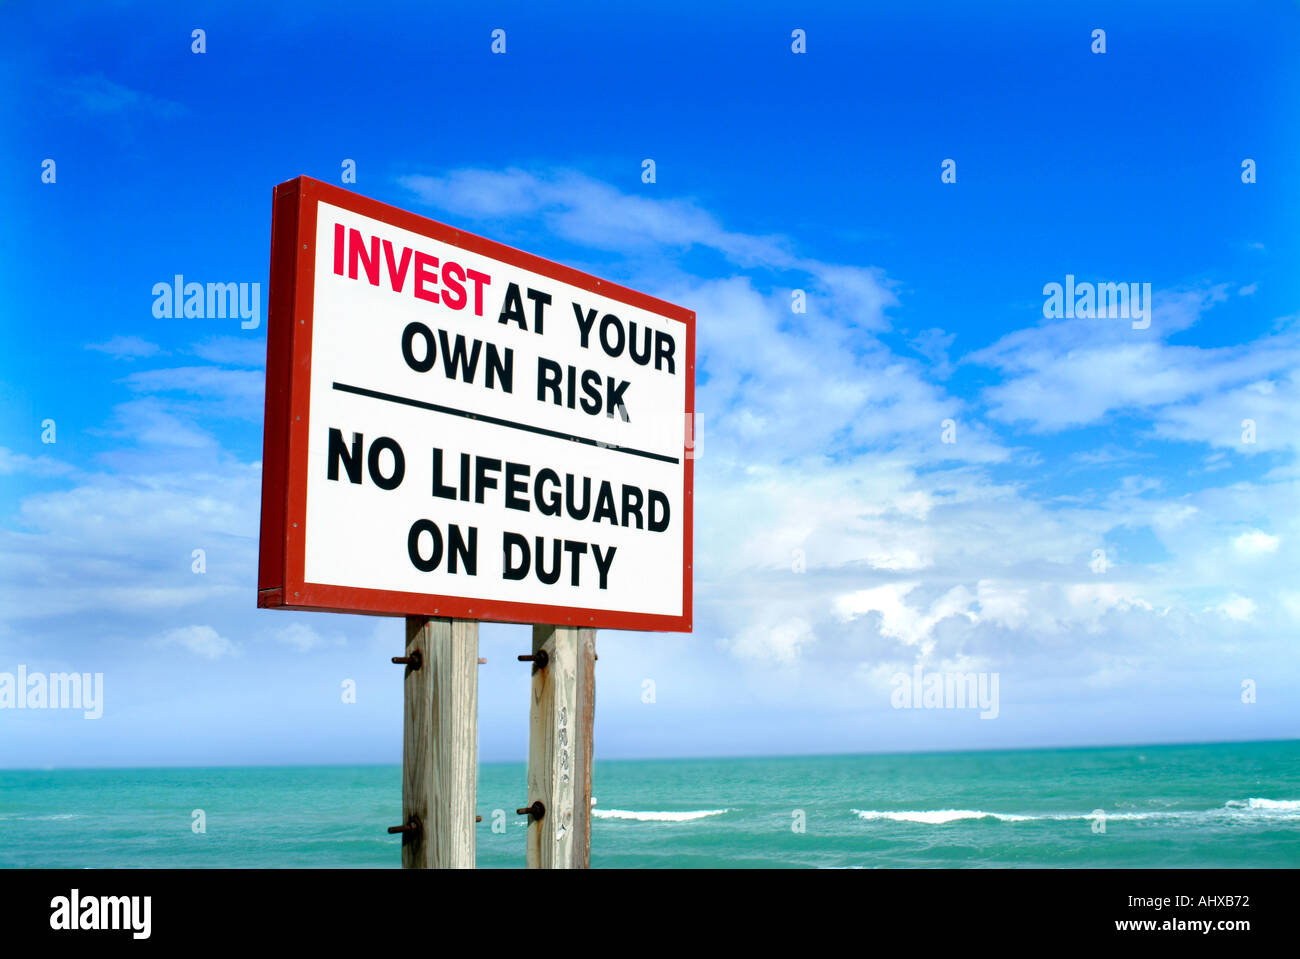 Invest at your own risk sign conveying the concept that investments are risky without a lifeguard - Stock Image